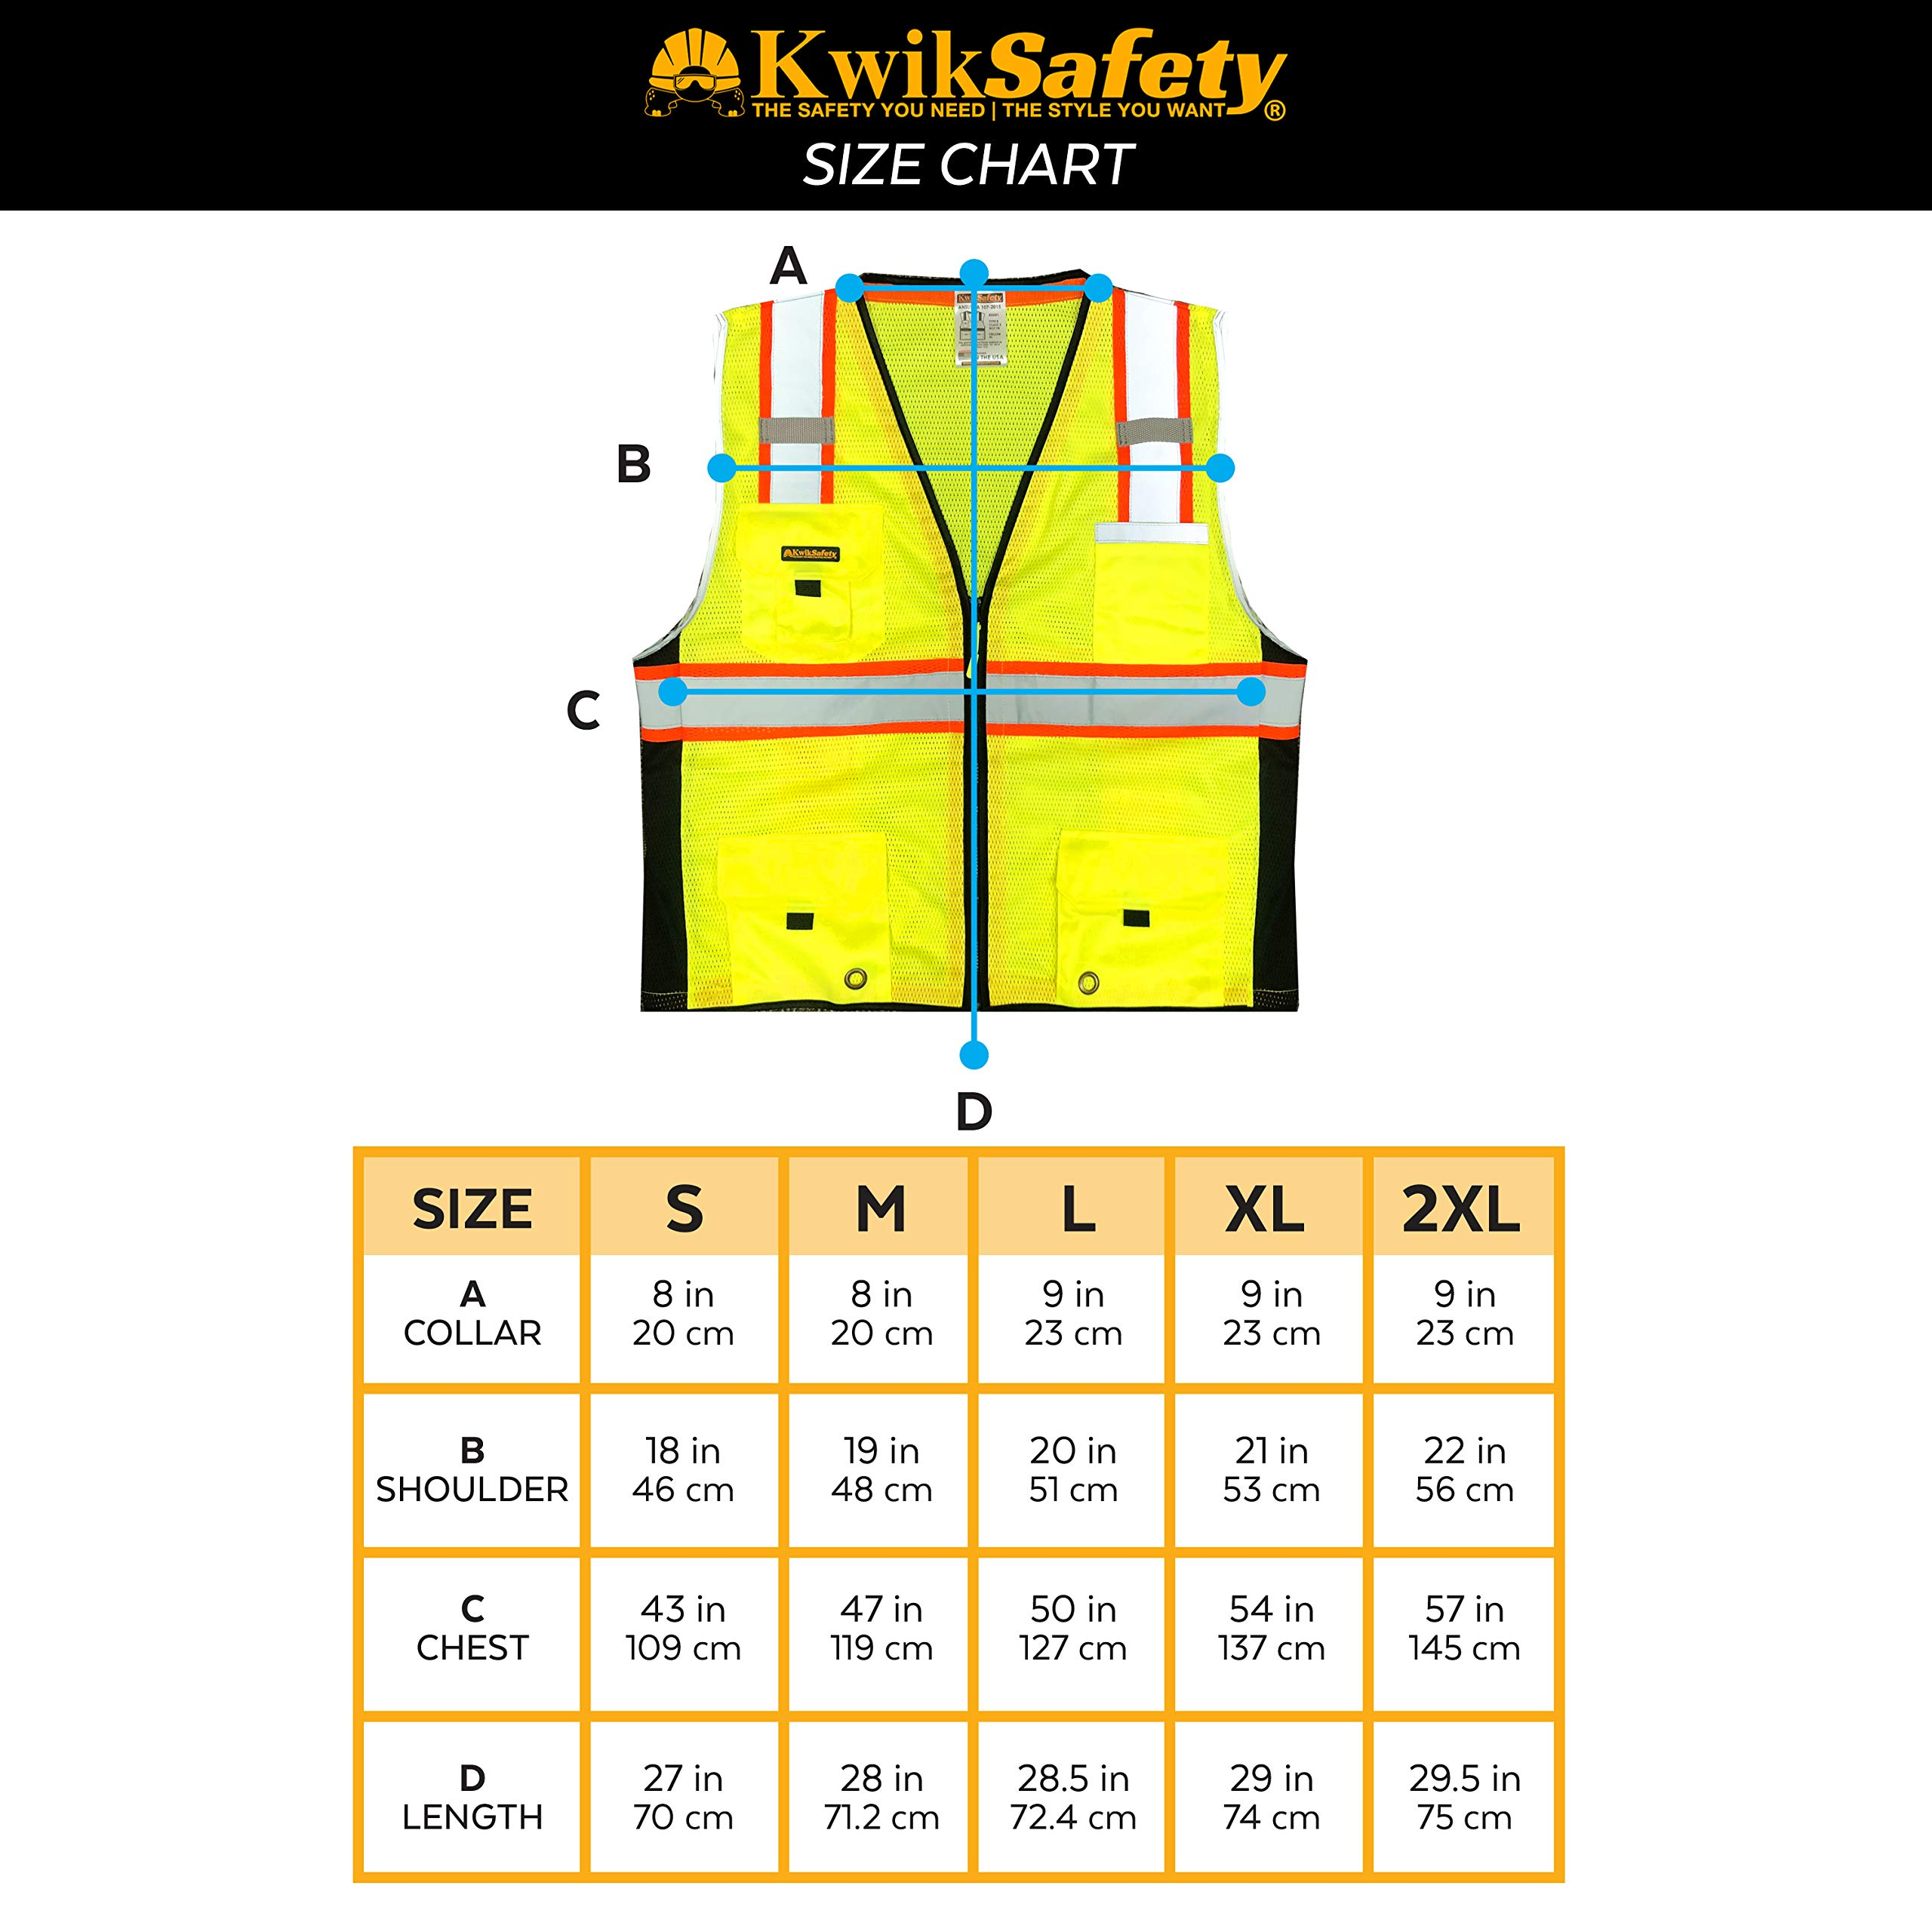 KwikSafety (Charlotte, NC) BIG KAHUNA (11 Pockets) Class 2 ANSI High Visibility Reflective Safety Vest Heavy Duty Mesh with Zipper and HiVis for OSHA Construction Work HiViz Men Yellow Black Small by KwikSafety (Image #7)